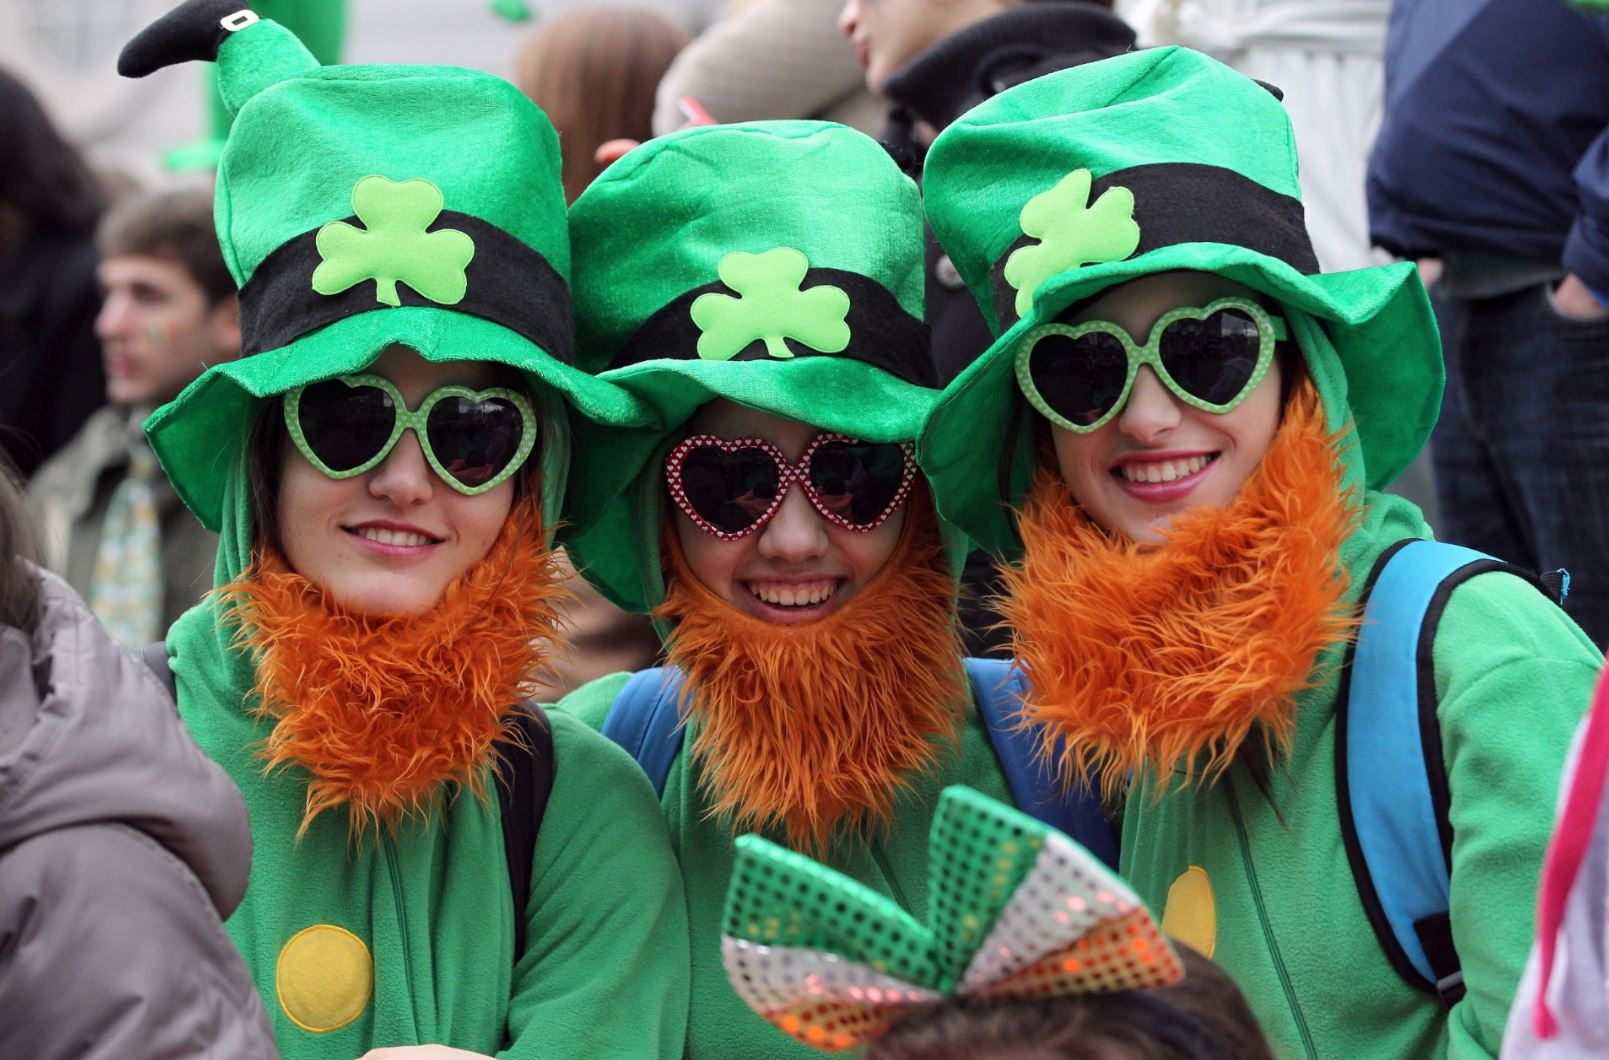 Top spots to cheers with a Guinness this St Patrick's Day